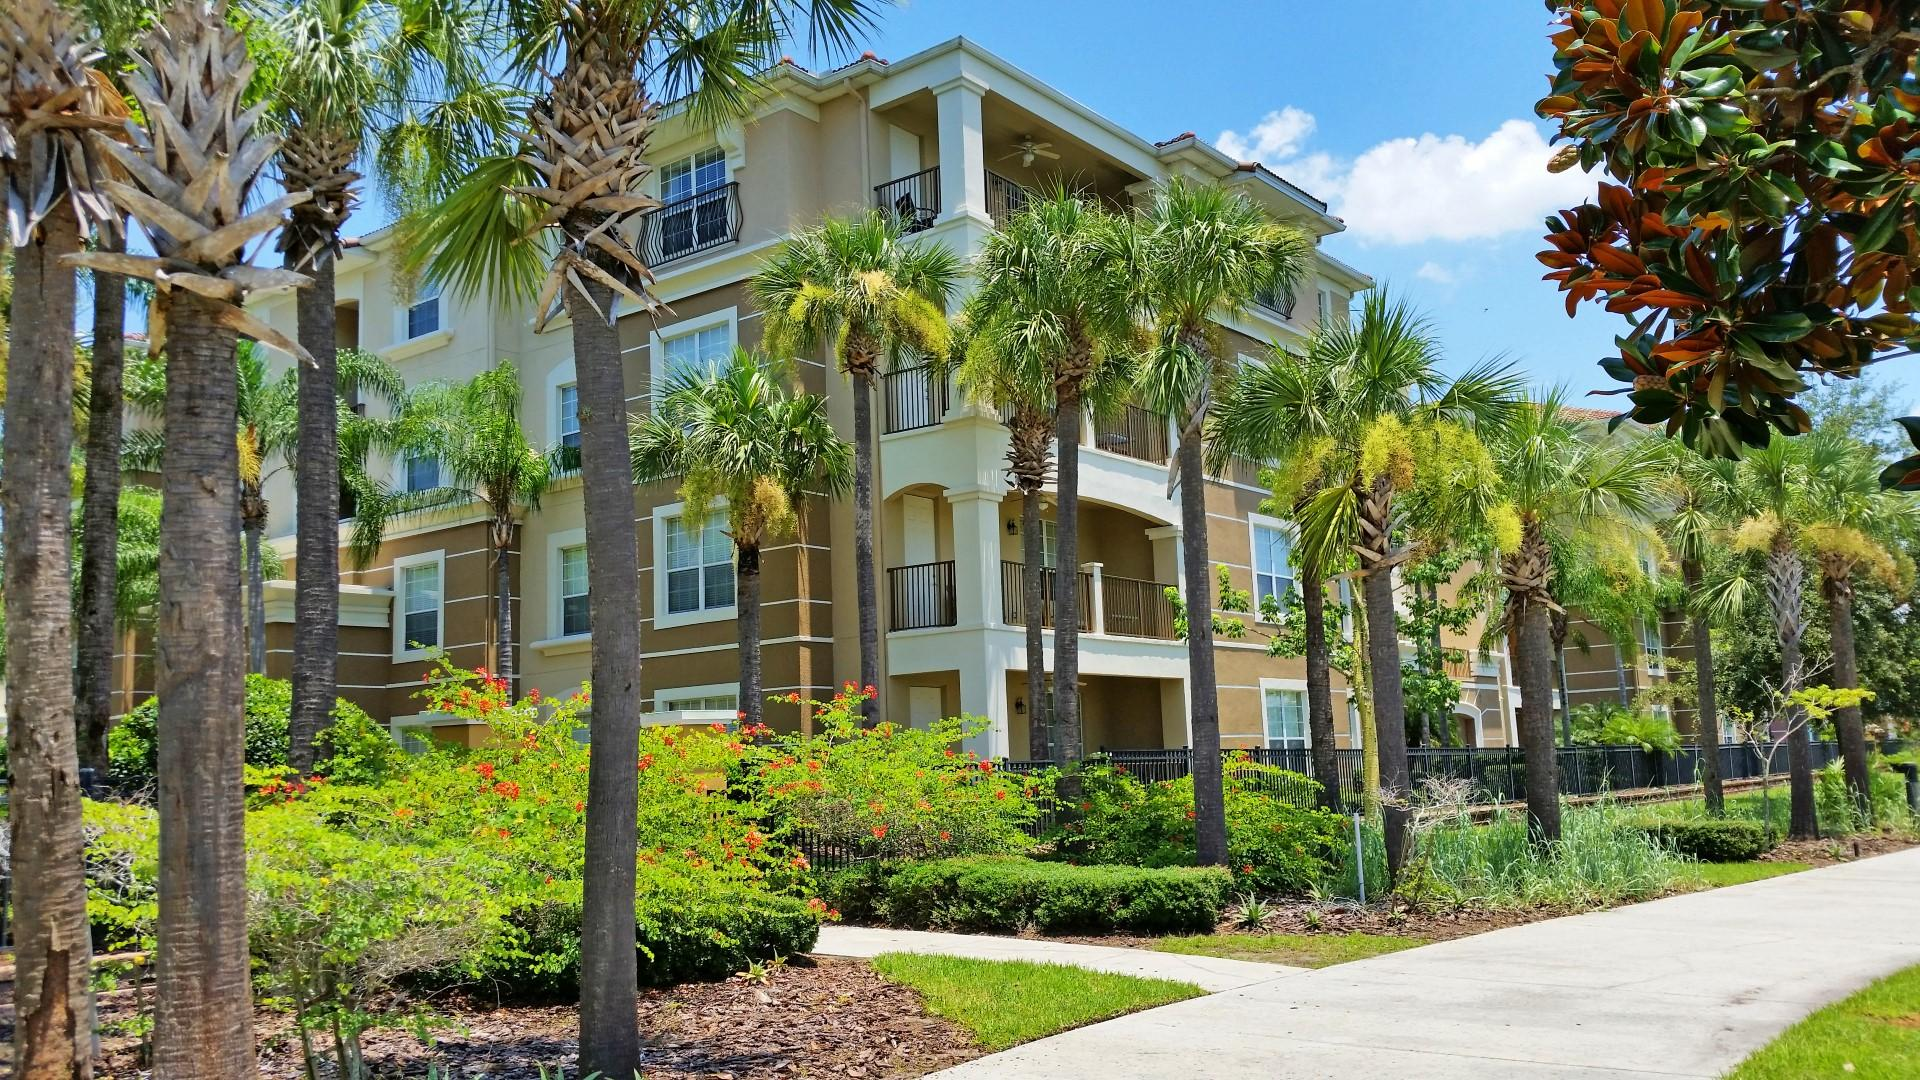 Spacious, Lakeview Condo with Patio; Minutes from Disney